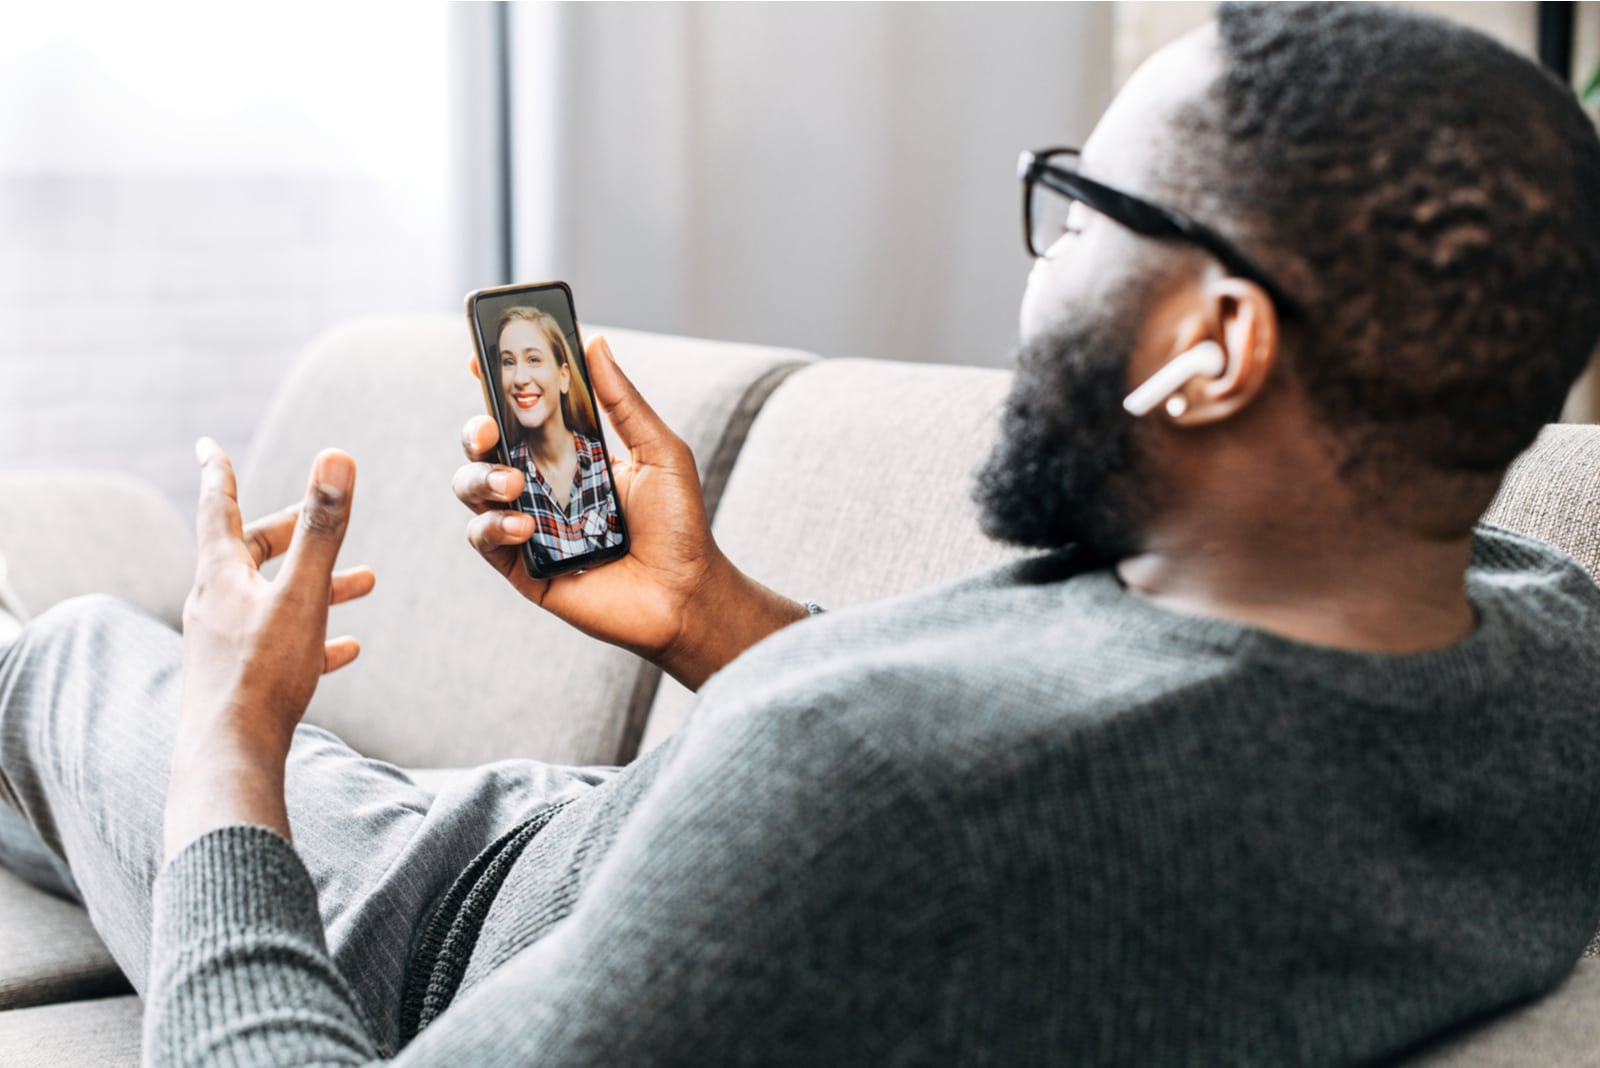 the black man sits on the couch and talks to the smiling blonde over a video call